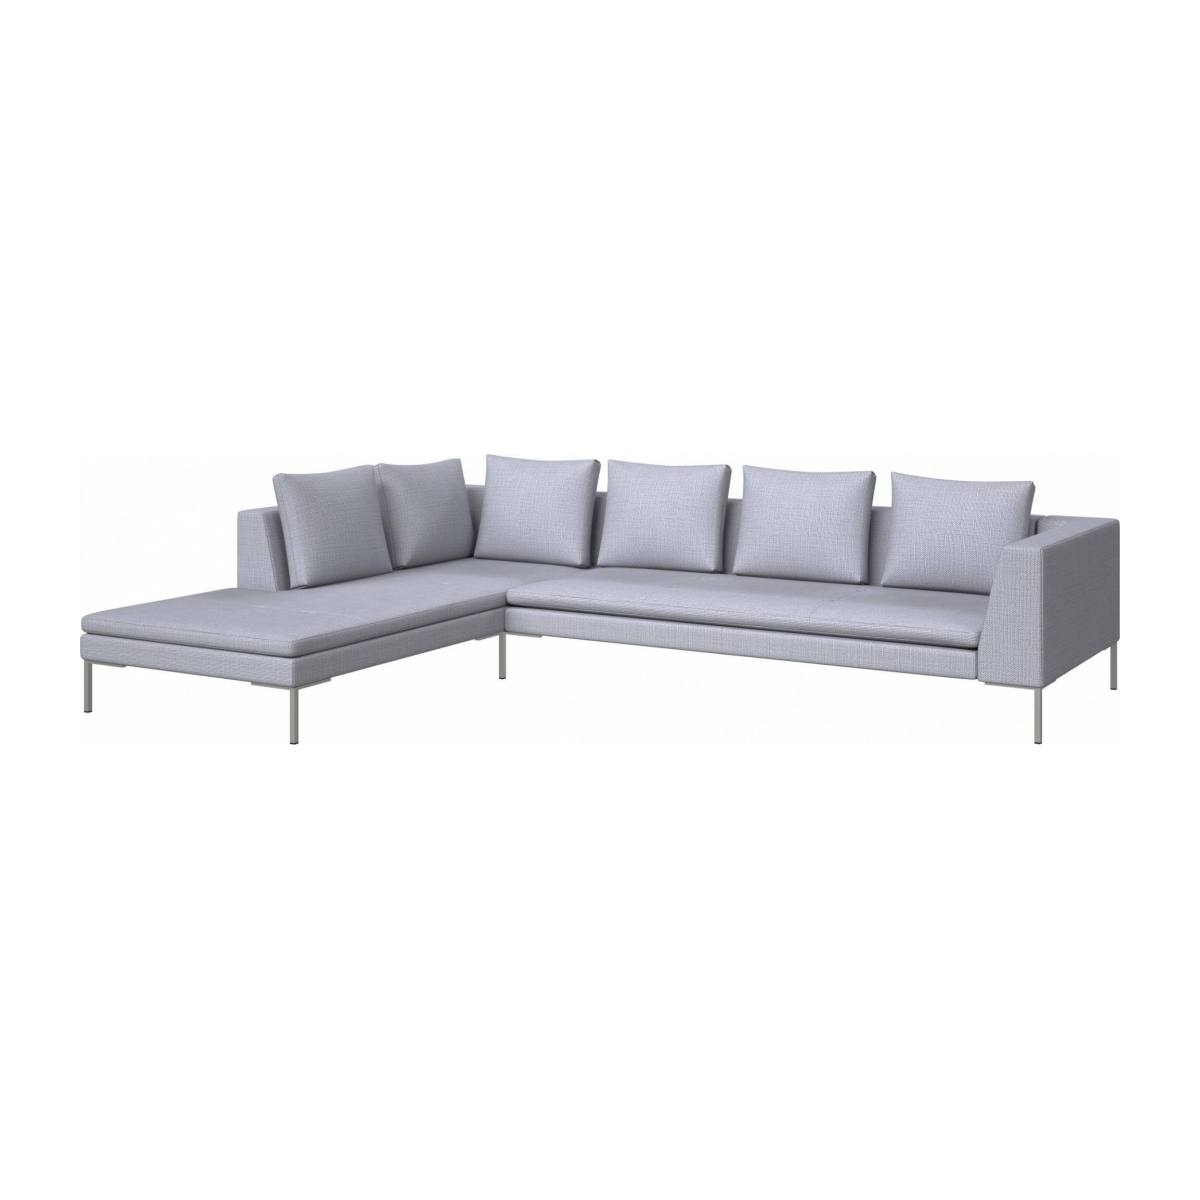 3 seater sofa with chaise longue on the left in Fasoli fabric, grey sky  n°2